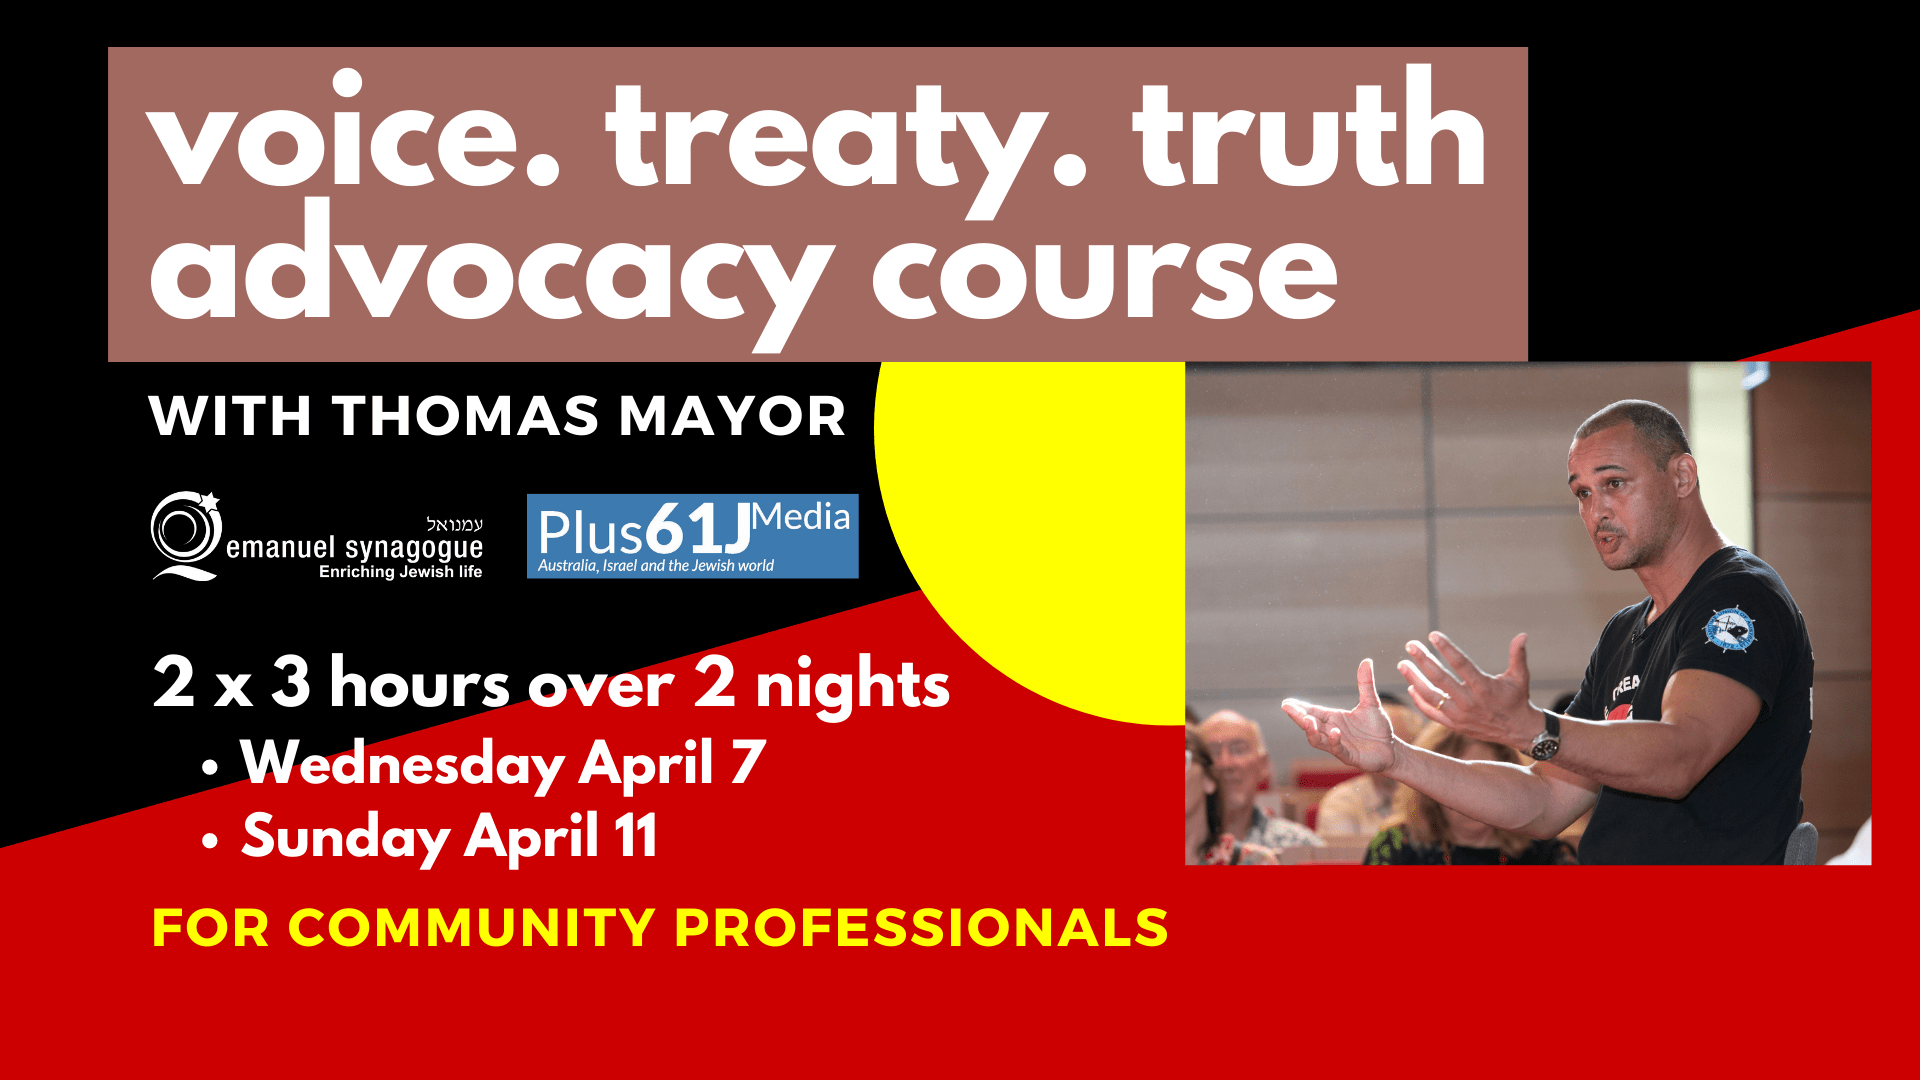 oice. treaty. truth advocacy course March 202